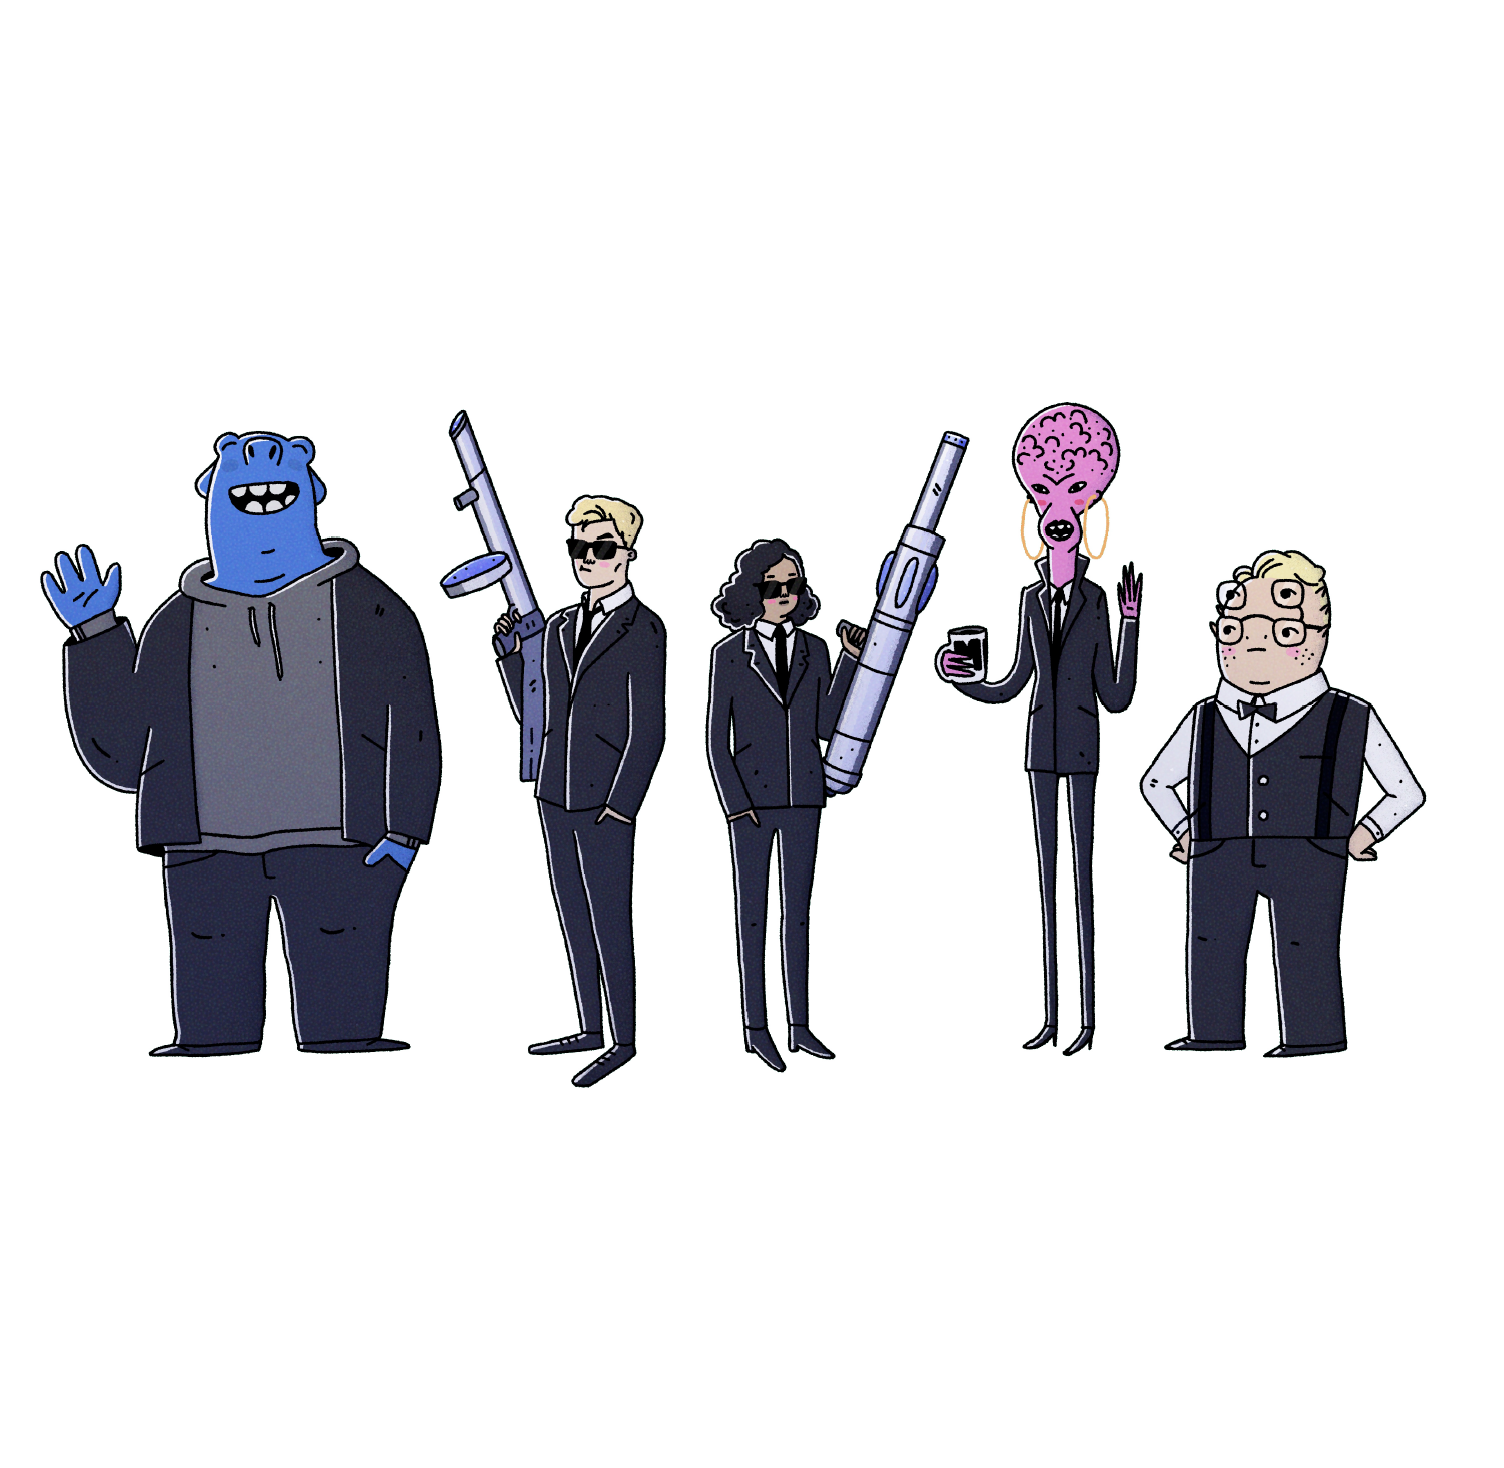 Character line-up - Men in black